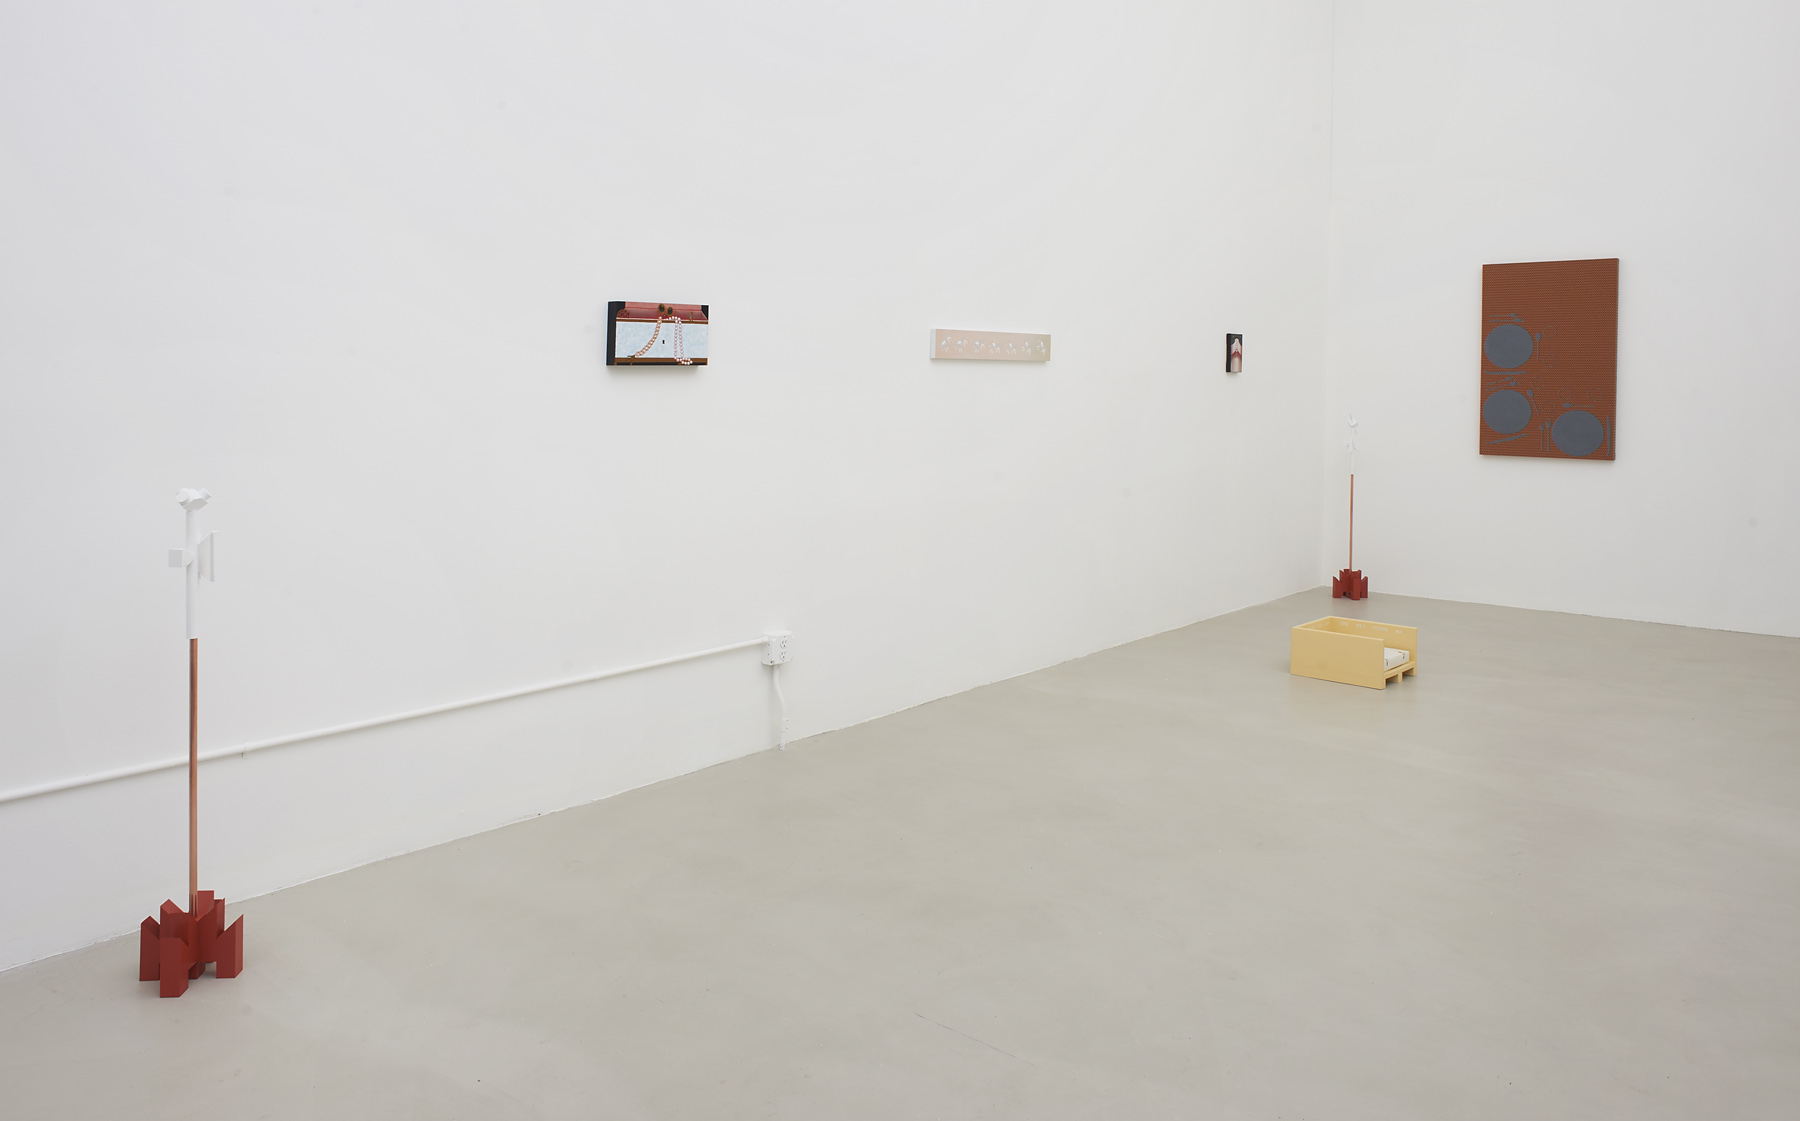 JSG South_All at Once, 2016_Installation view_2